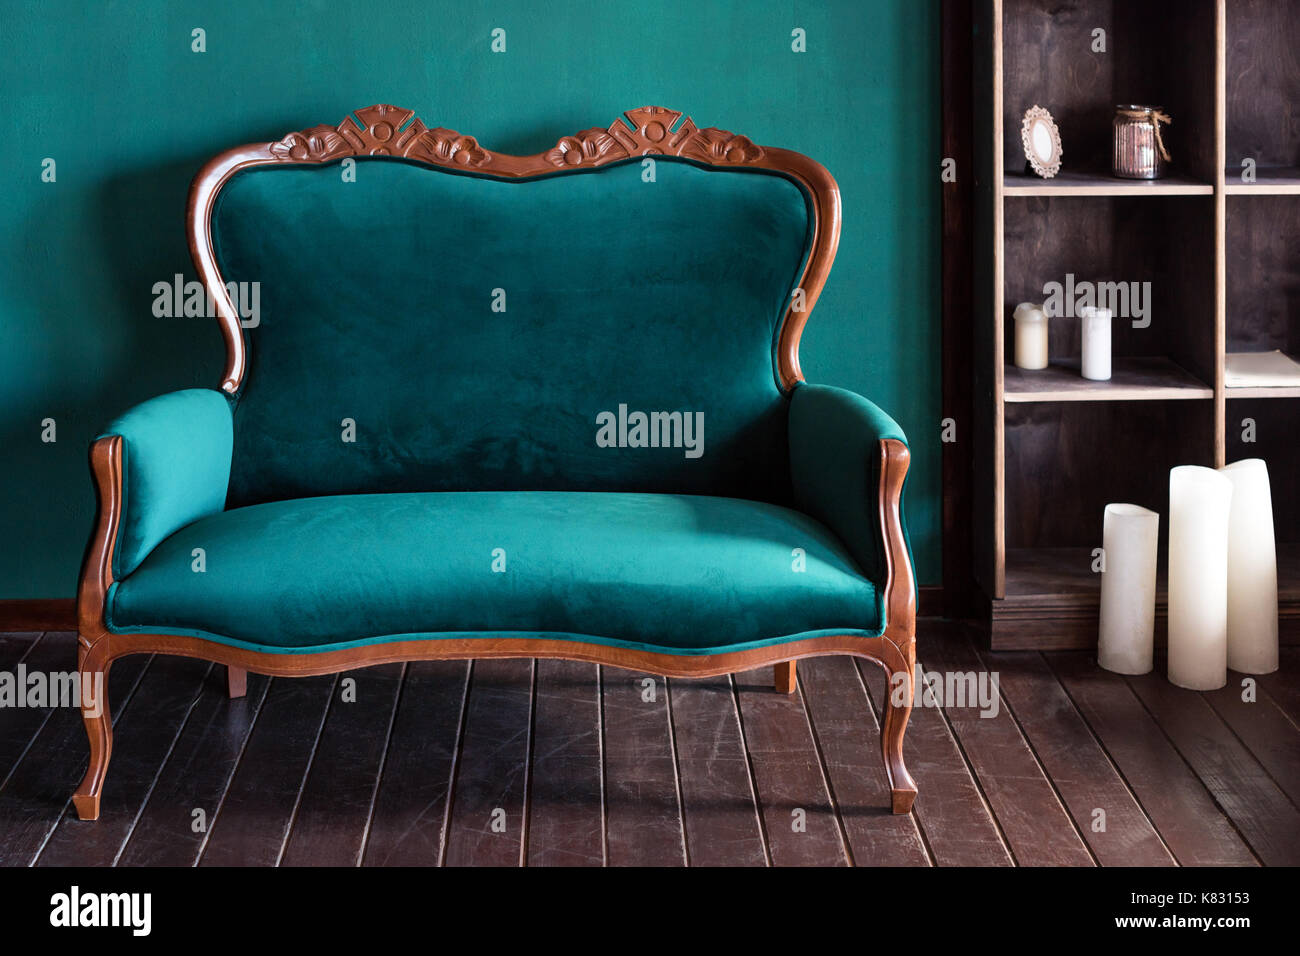 Antique Wood Sofa Couch In Vintage Room Classical Style Armchair Stock Photo Alamy